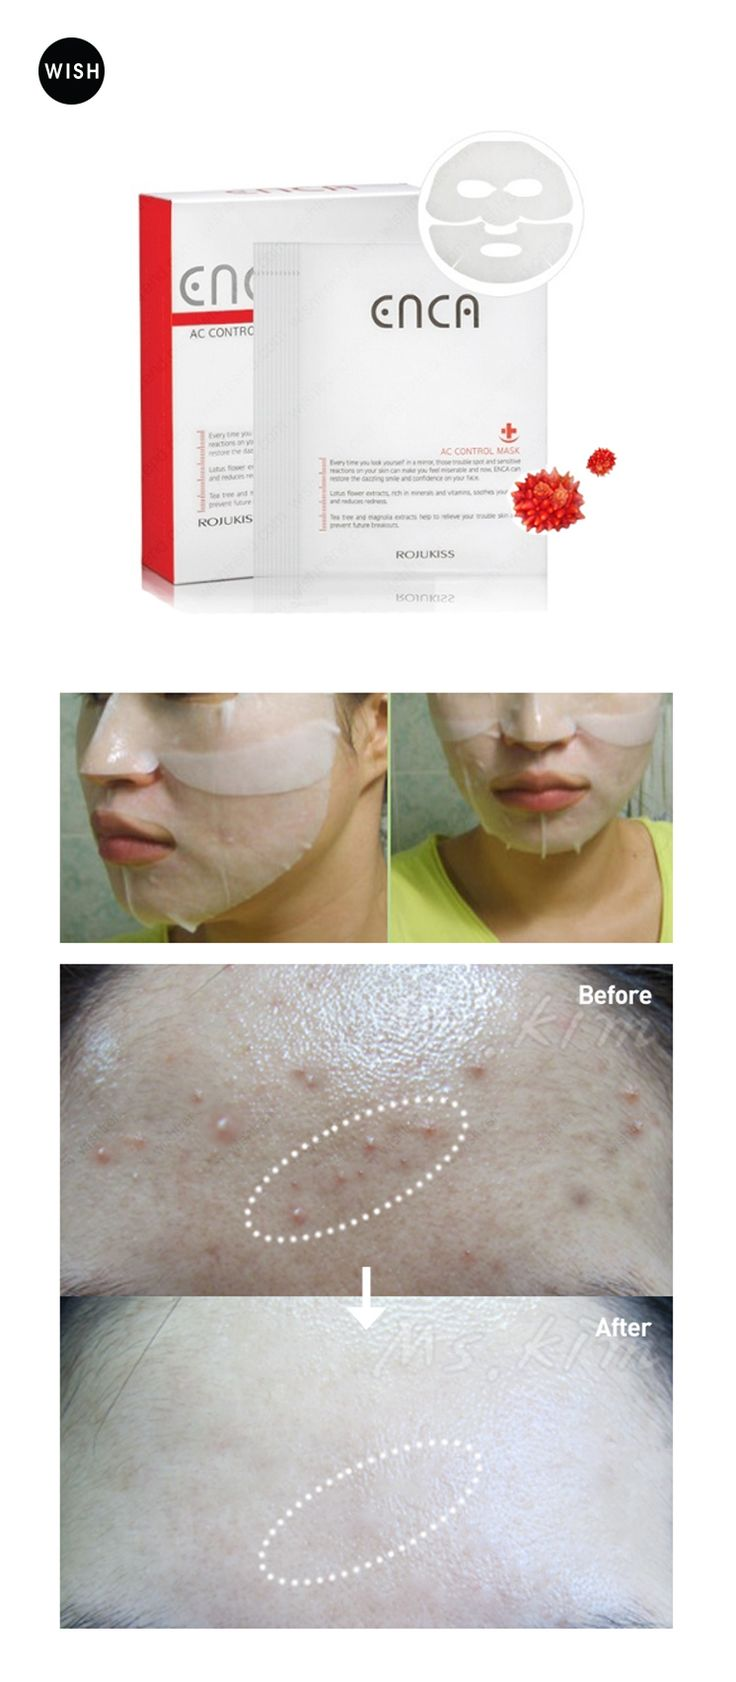 [Beauty Tip] How to get rid of ACNE fast This mask pack is very effective in…